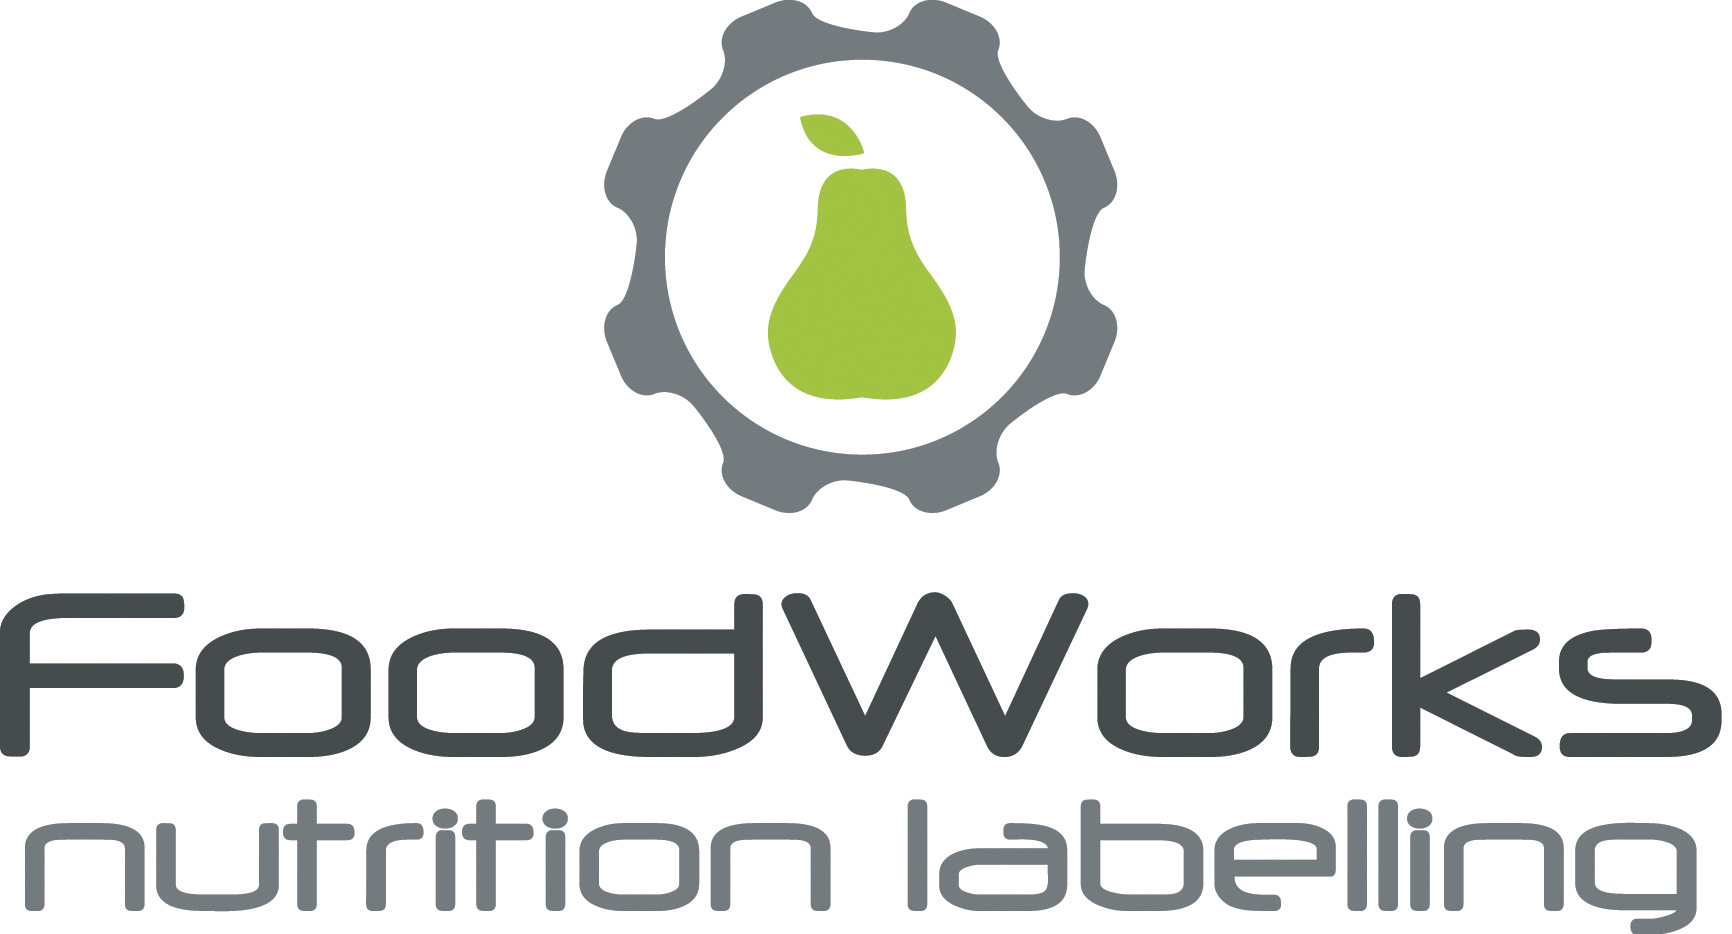 FoodWorks 10 Nutrition Labelling